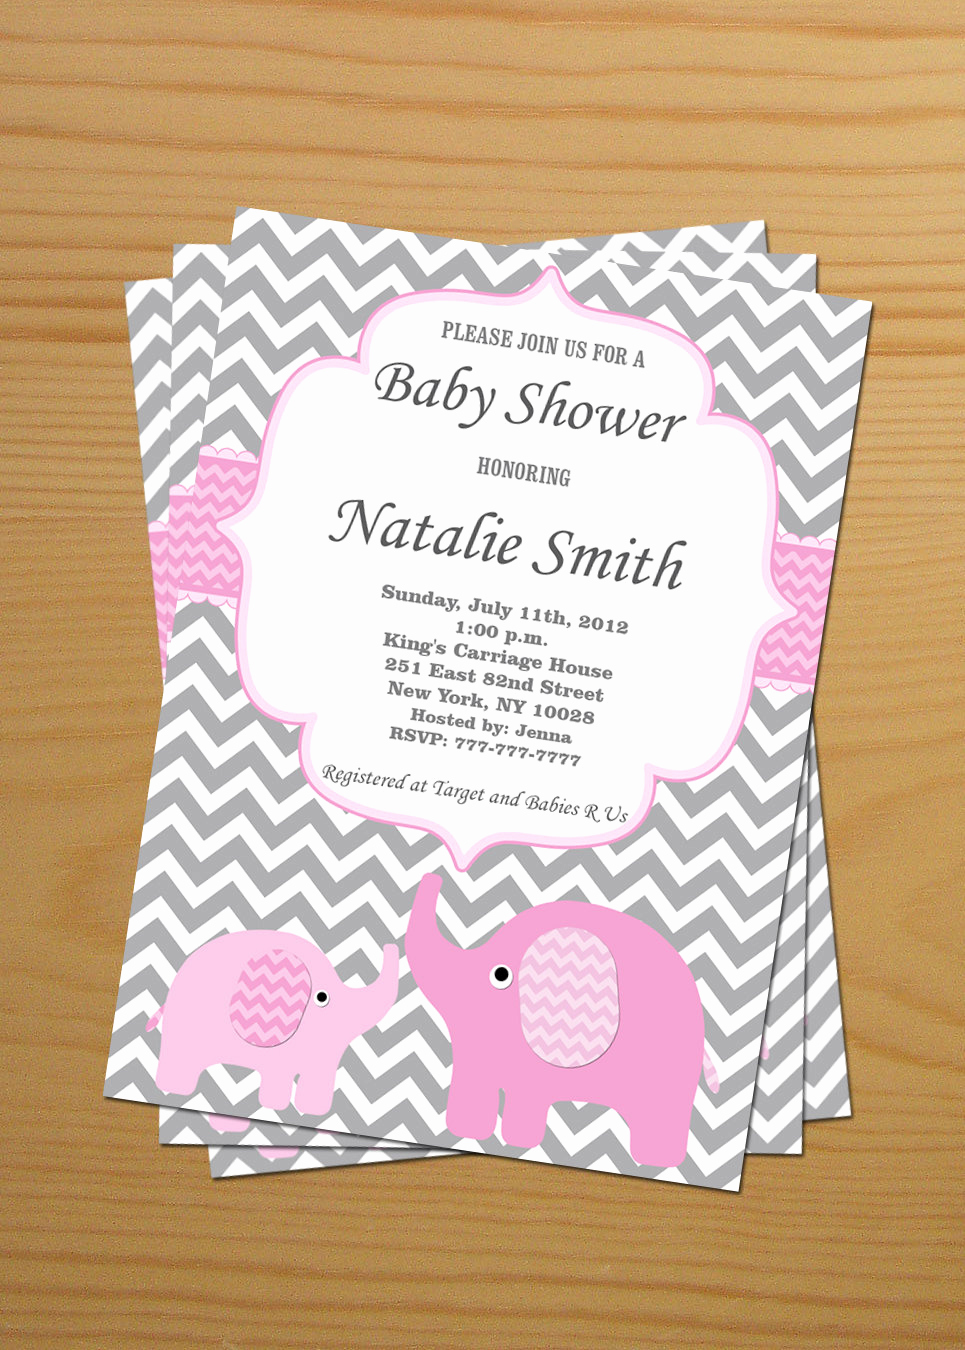 Baby Shower Pics for Invitation Beautiful Baby Shower Invitation Elephant Baby Shower Invitation Girl